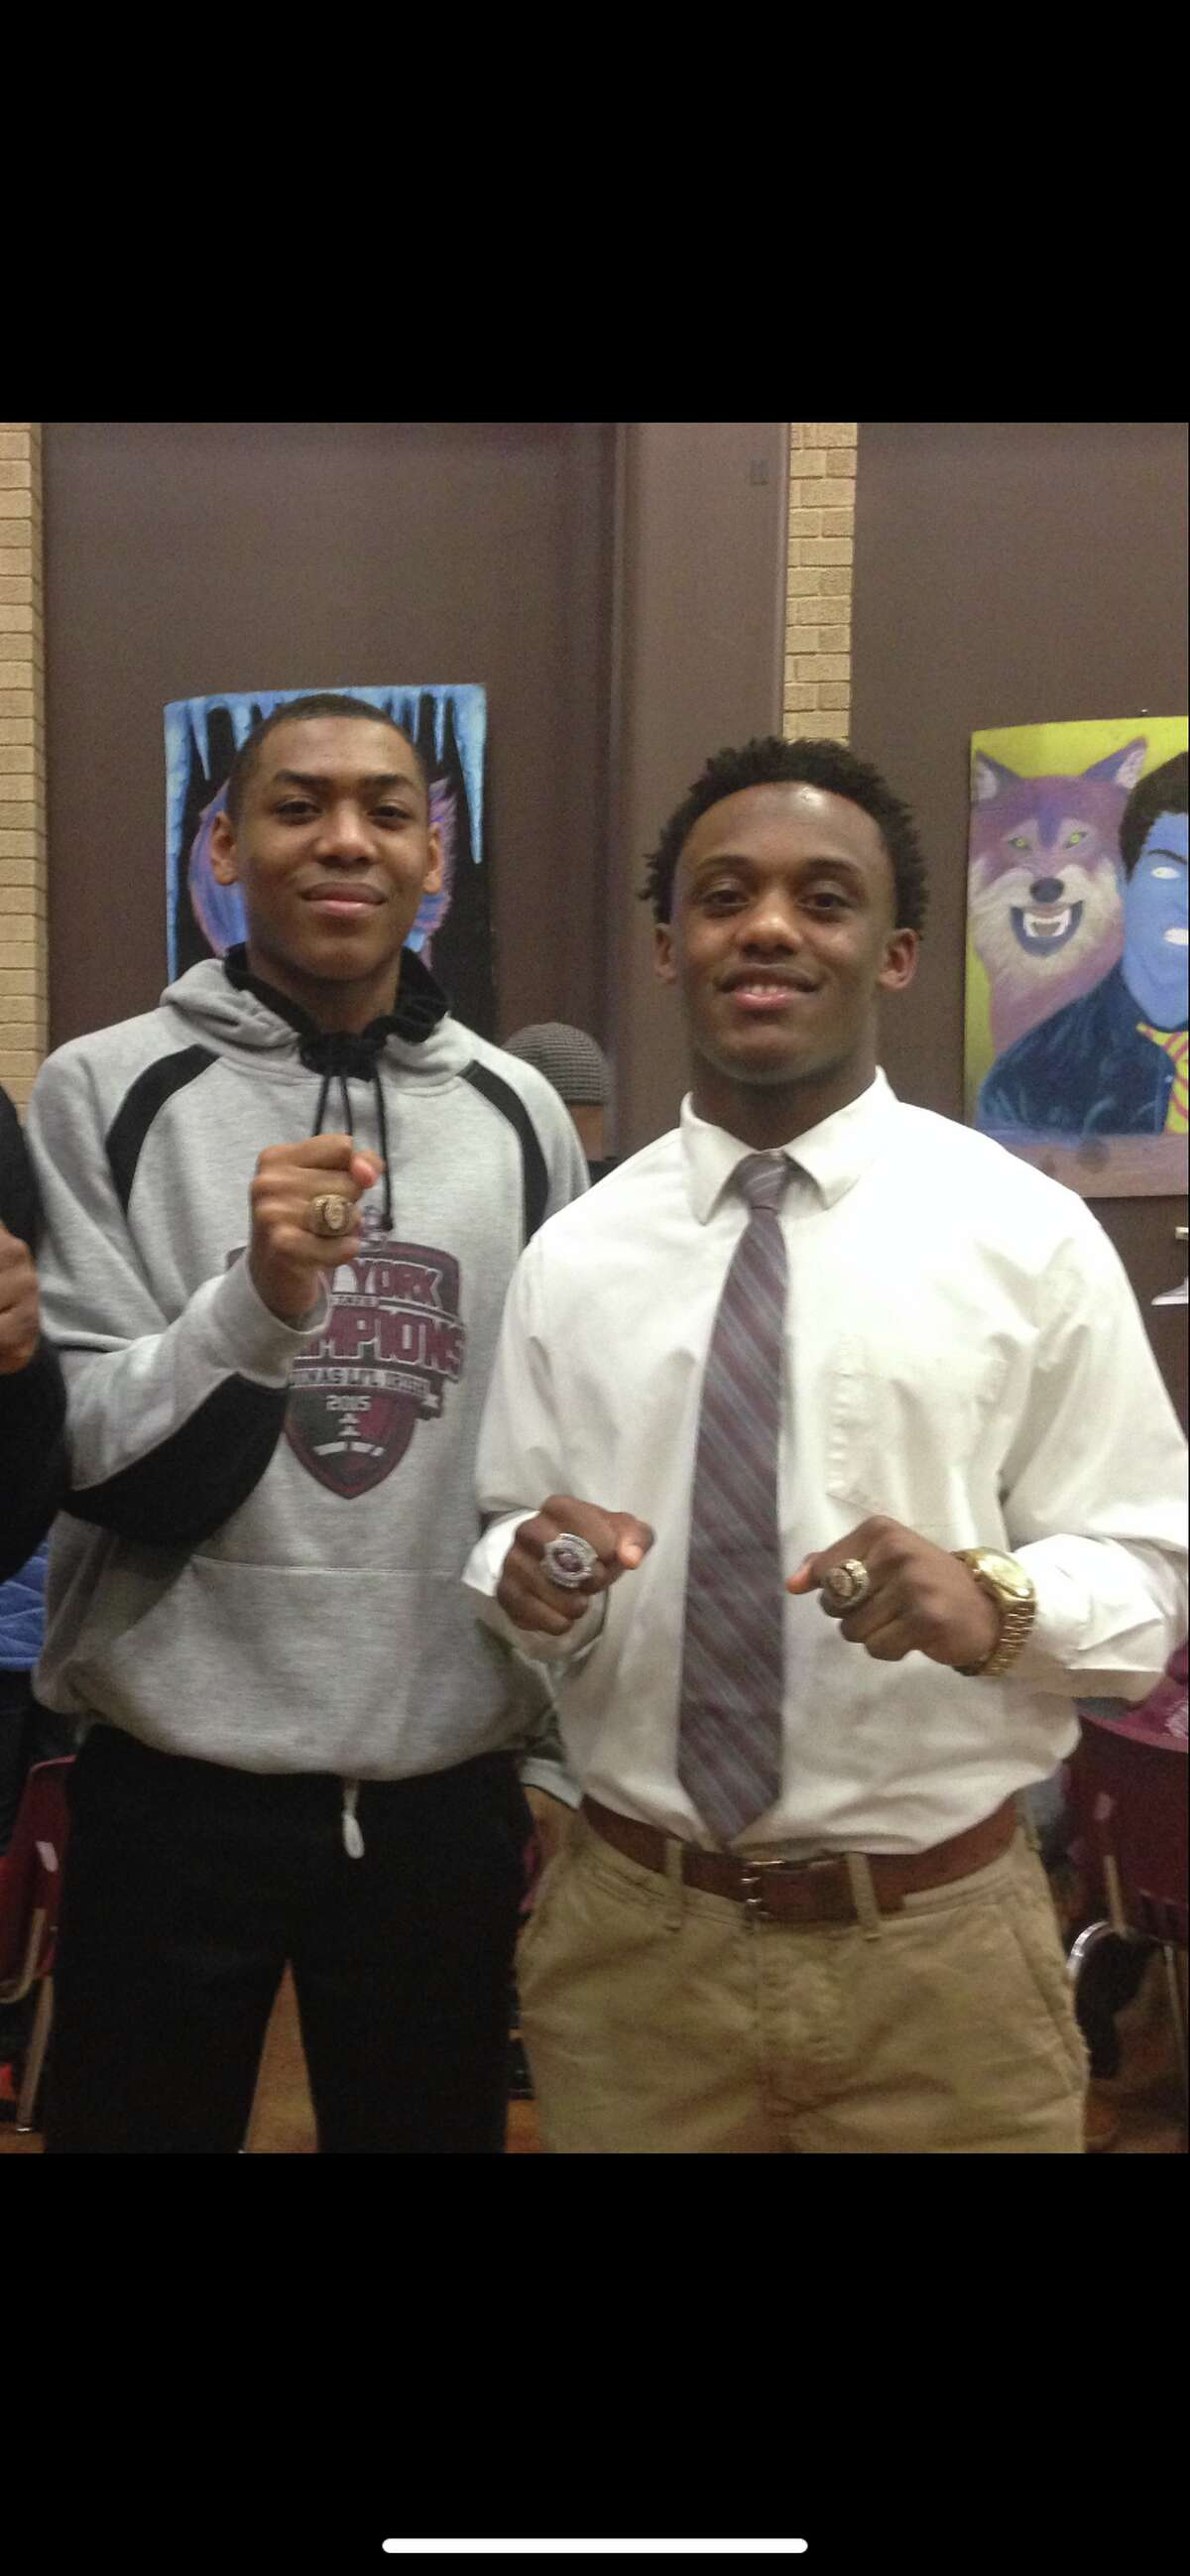 Jalen Pickett, left, and Earnest Edwards showed off their championship jewelry as teammates at Aquinas Institute in Rochester. (Courtesy of Jalen Pickett)